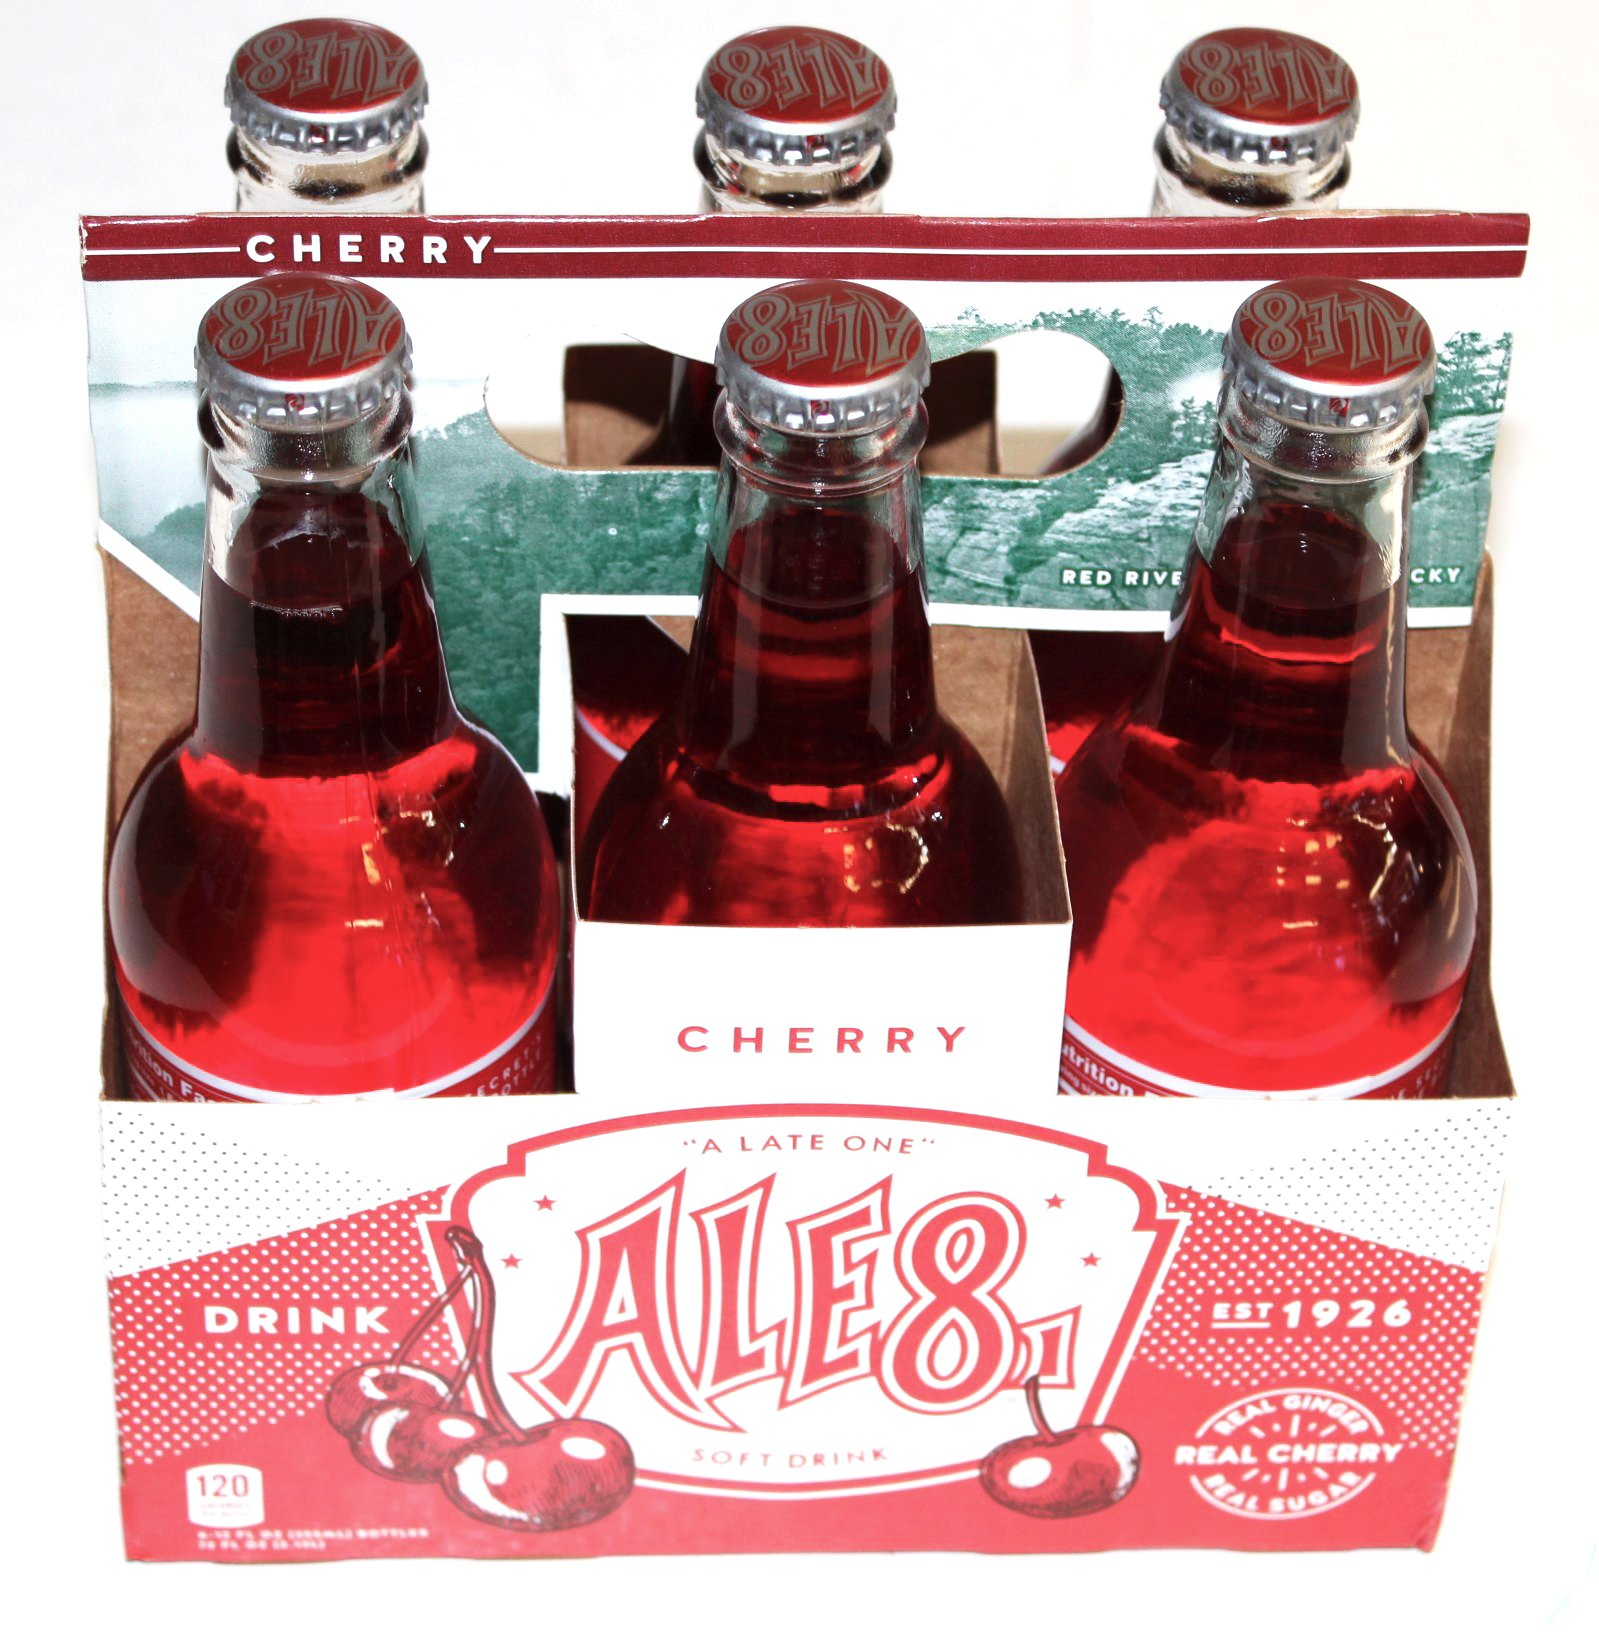 Ale 8 One Special Edition Cherry, 12 ounces (6 Glass Bottles)